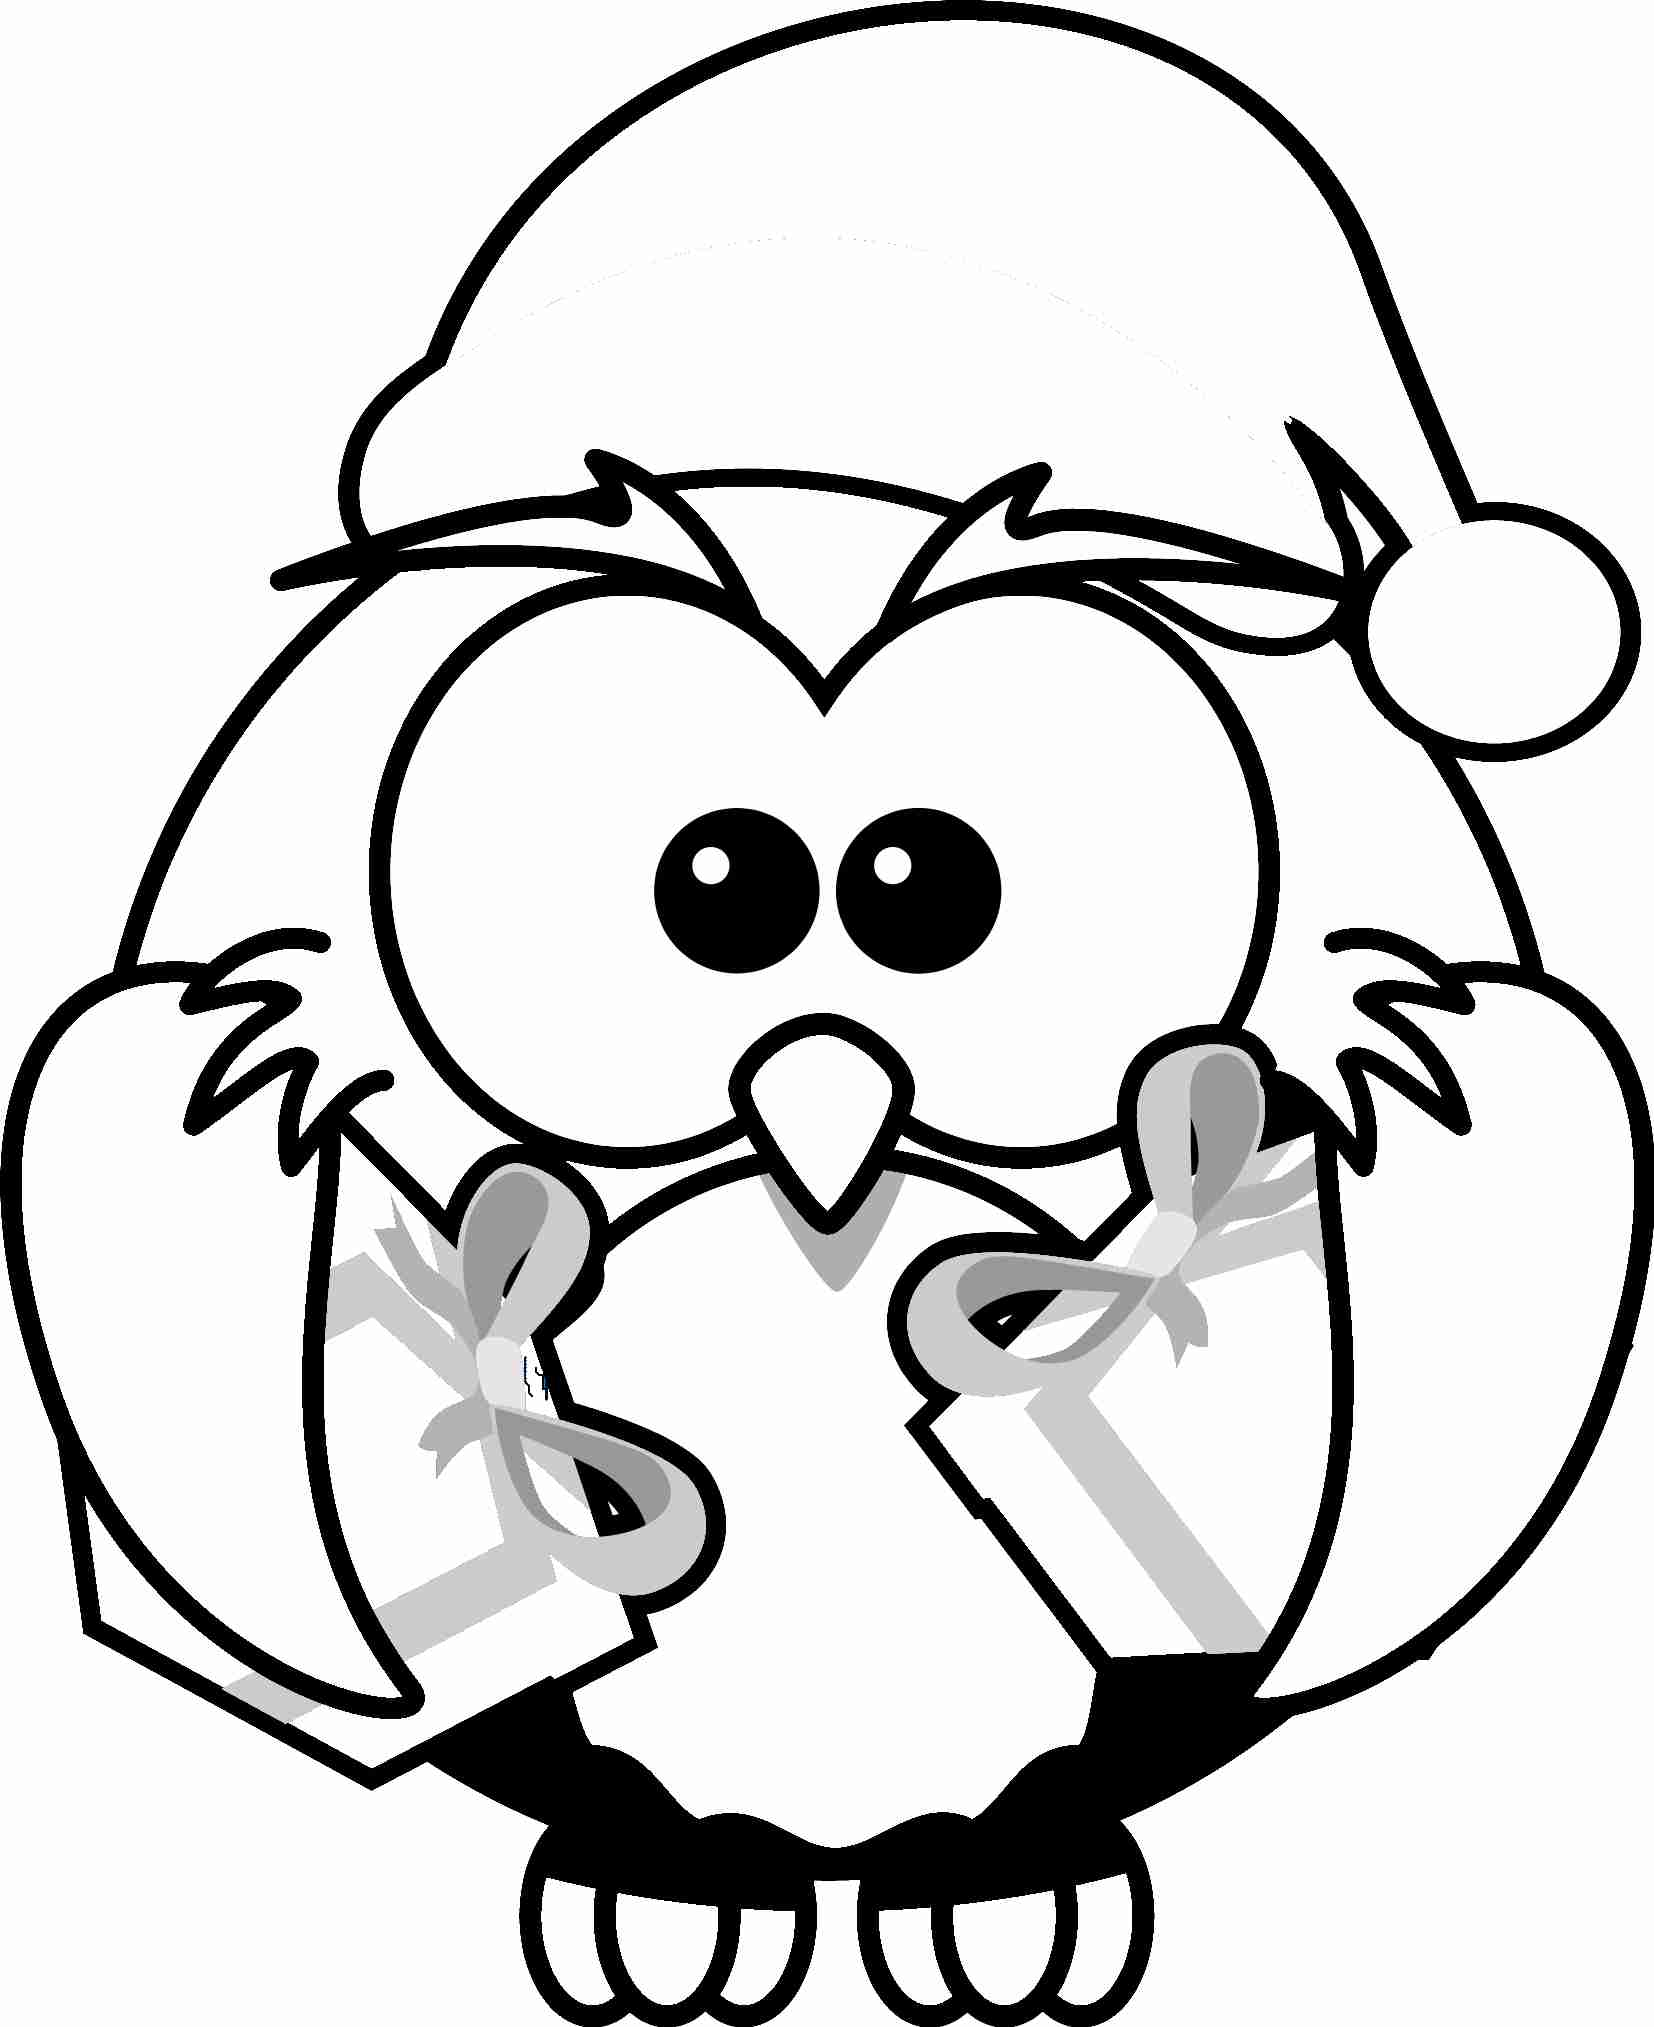 1654x2027 Good Christmaspenguin From Christmas Coloring Pages On With Hd